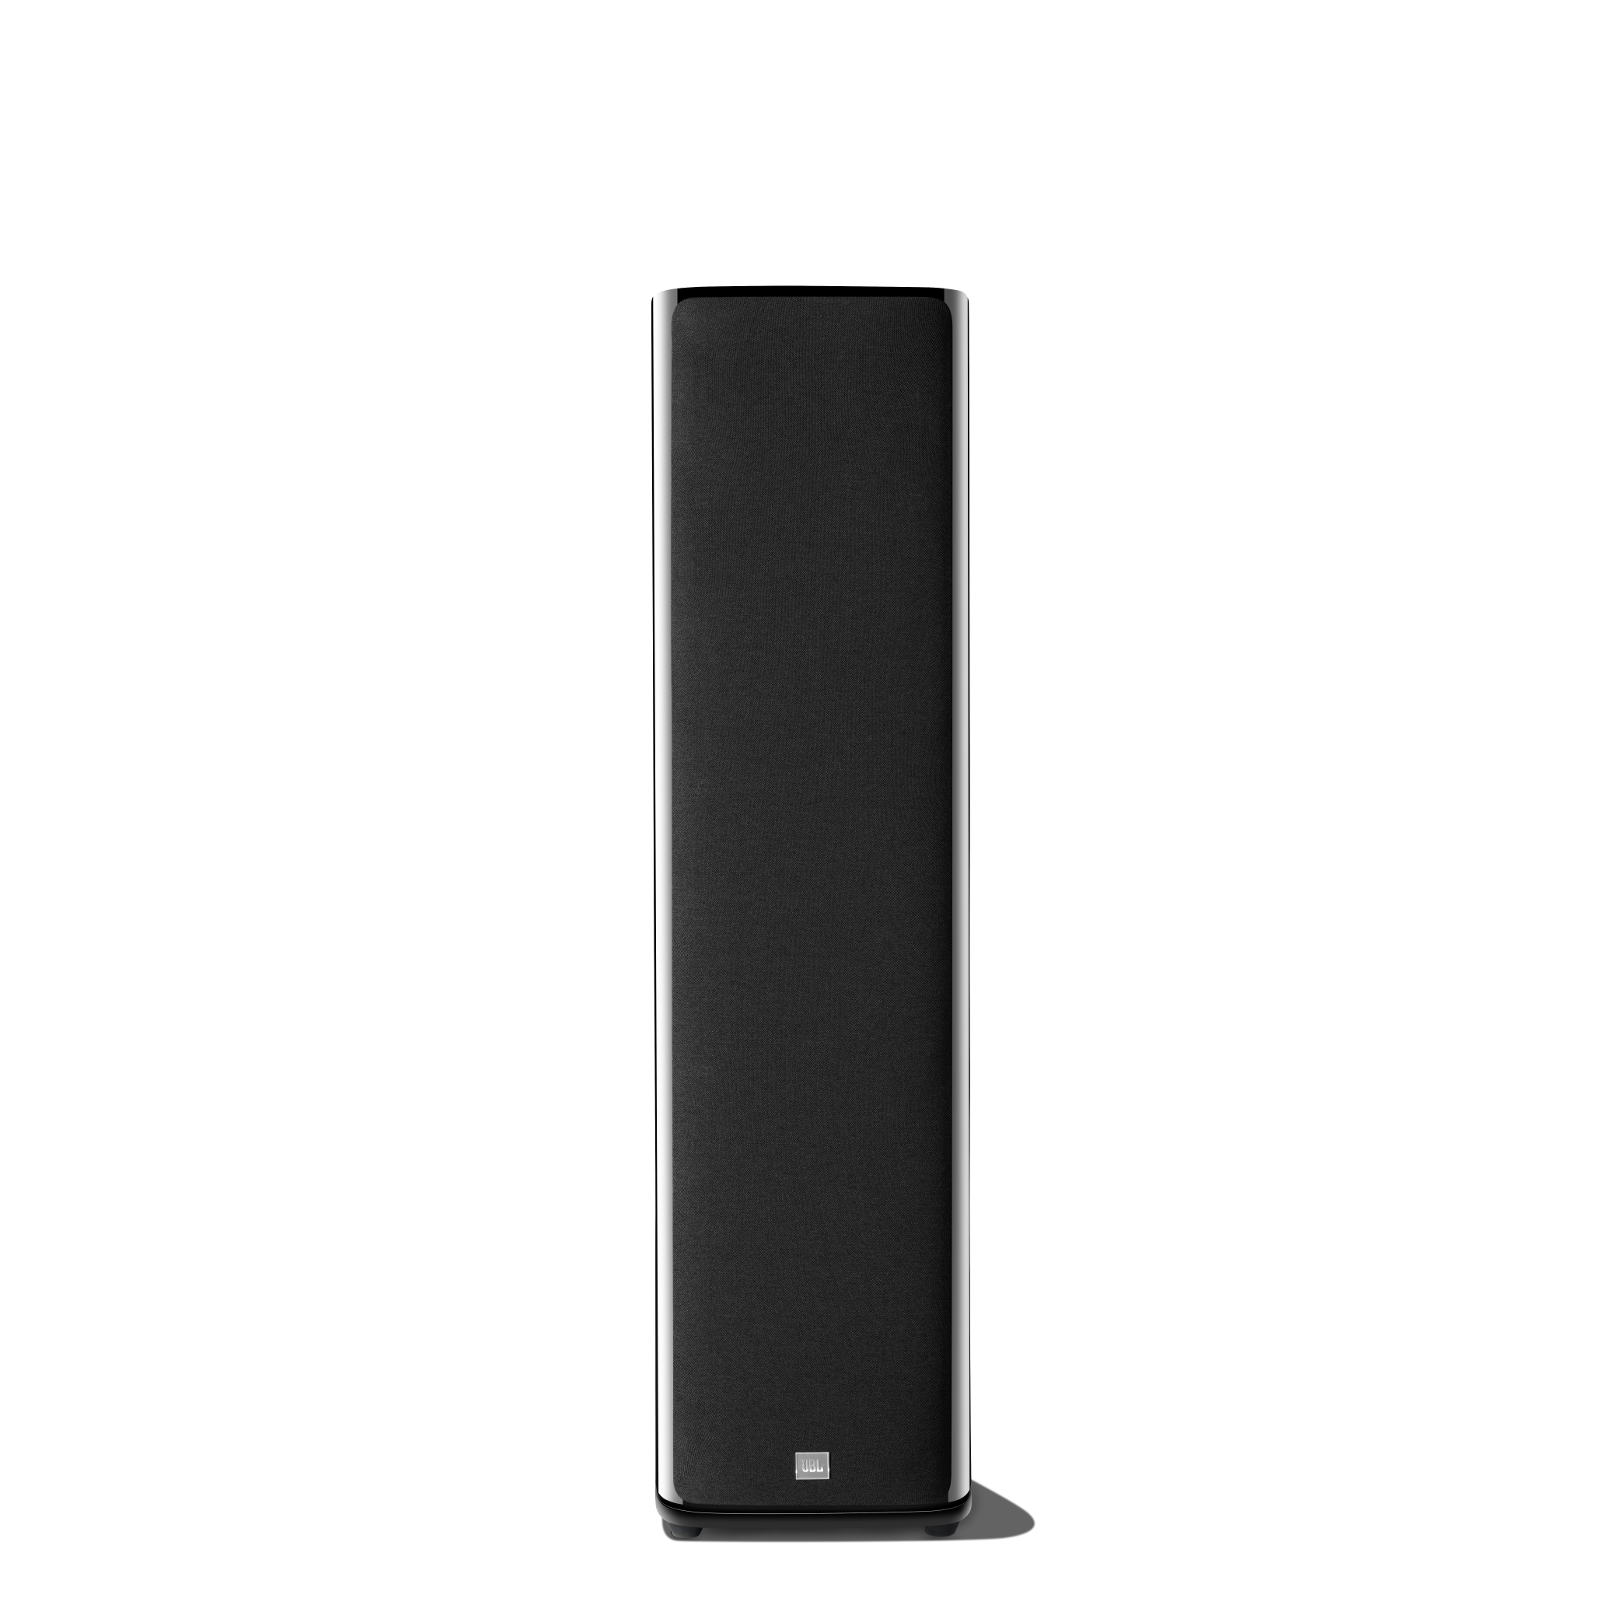 HDI-3800 - Black Gloss - 2 ½-way Triple 8-inch (200mm) Floorstanding Loudspeaker - Front